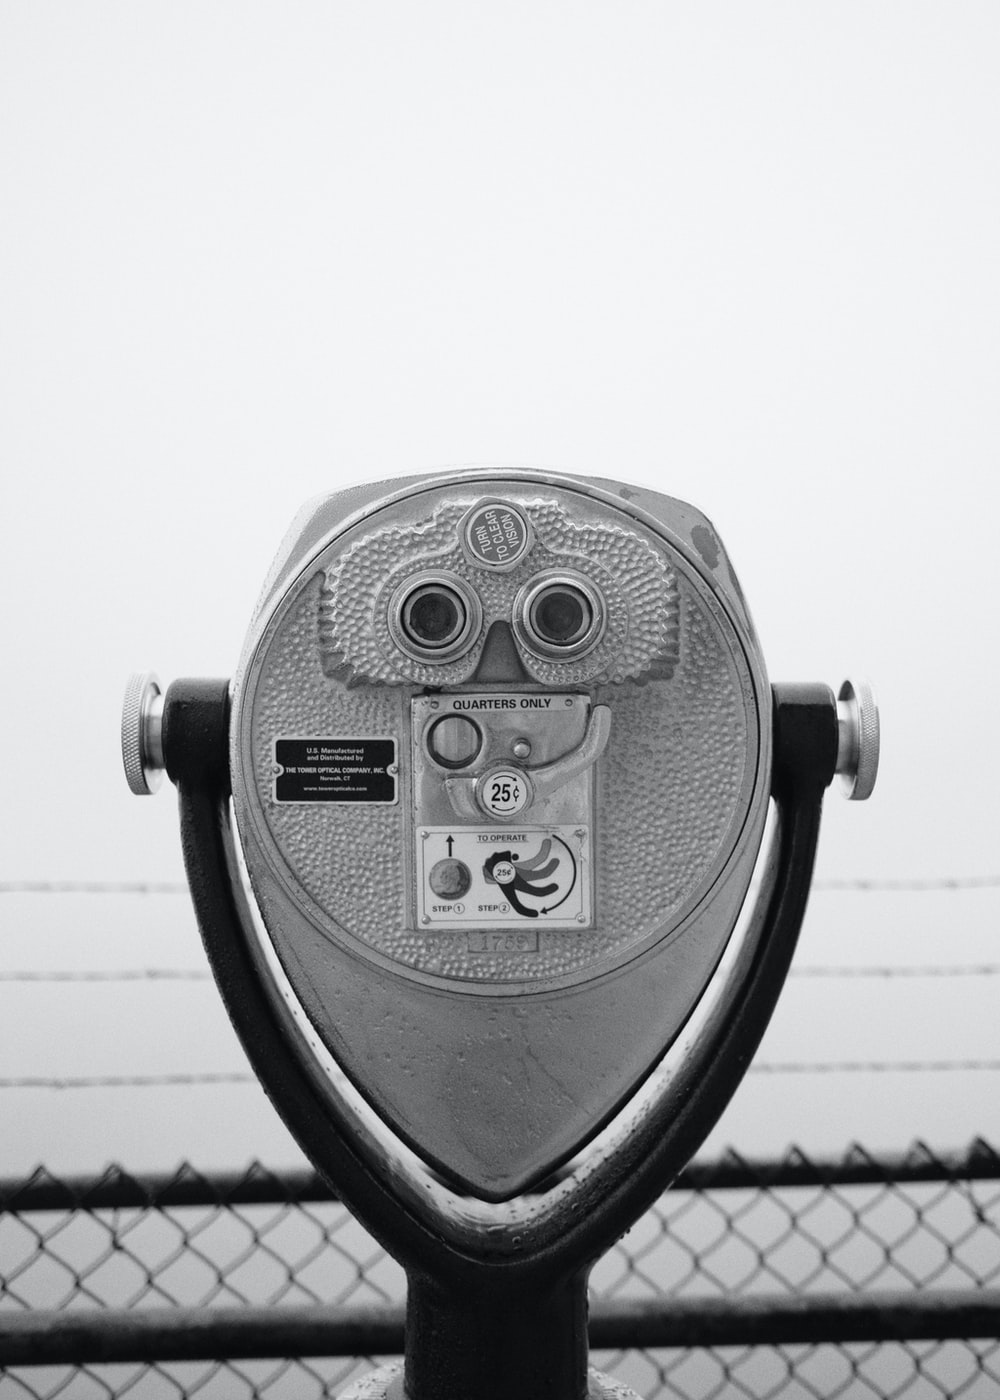 gray coin operated binoculars on white background